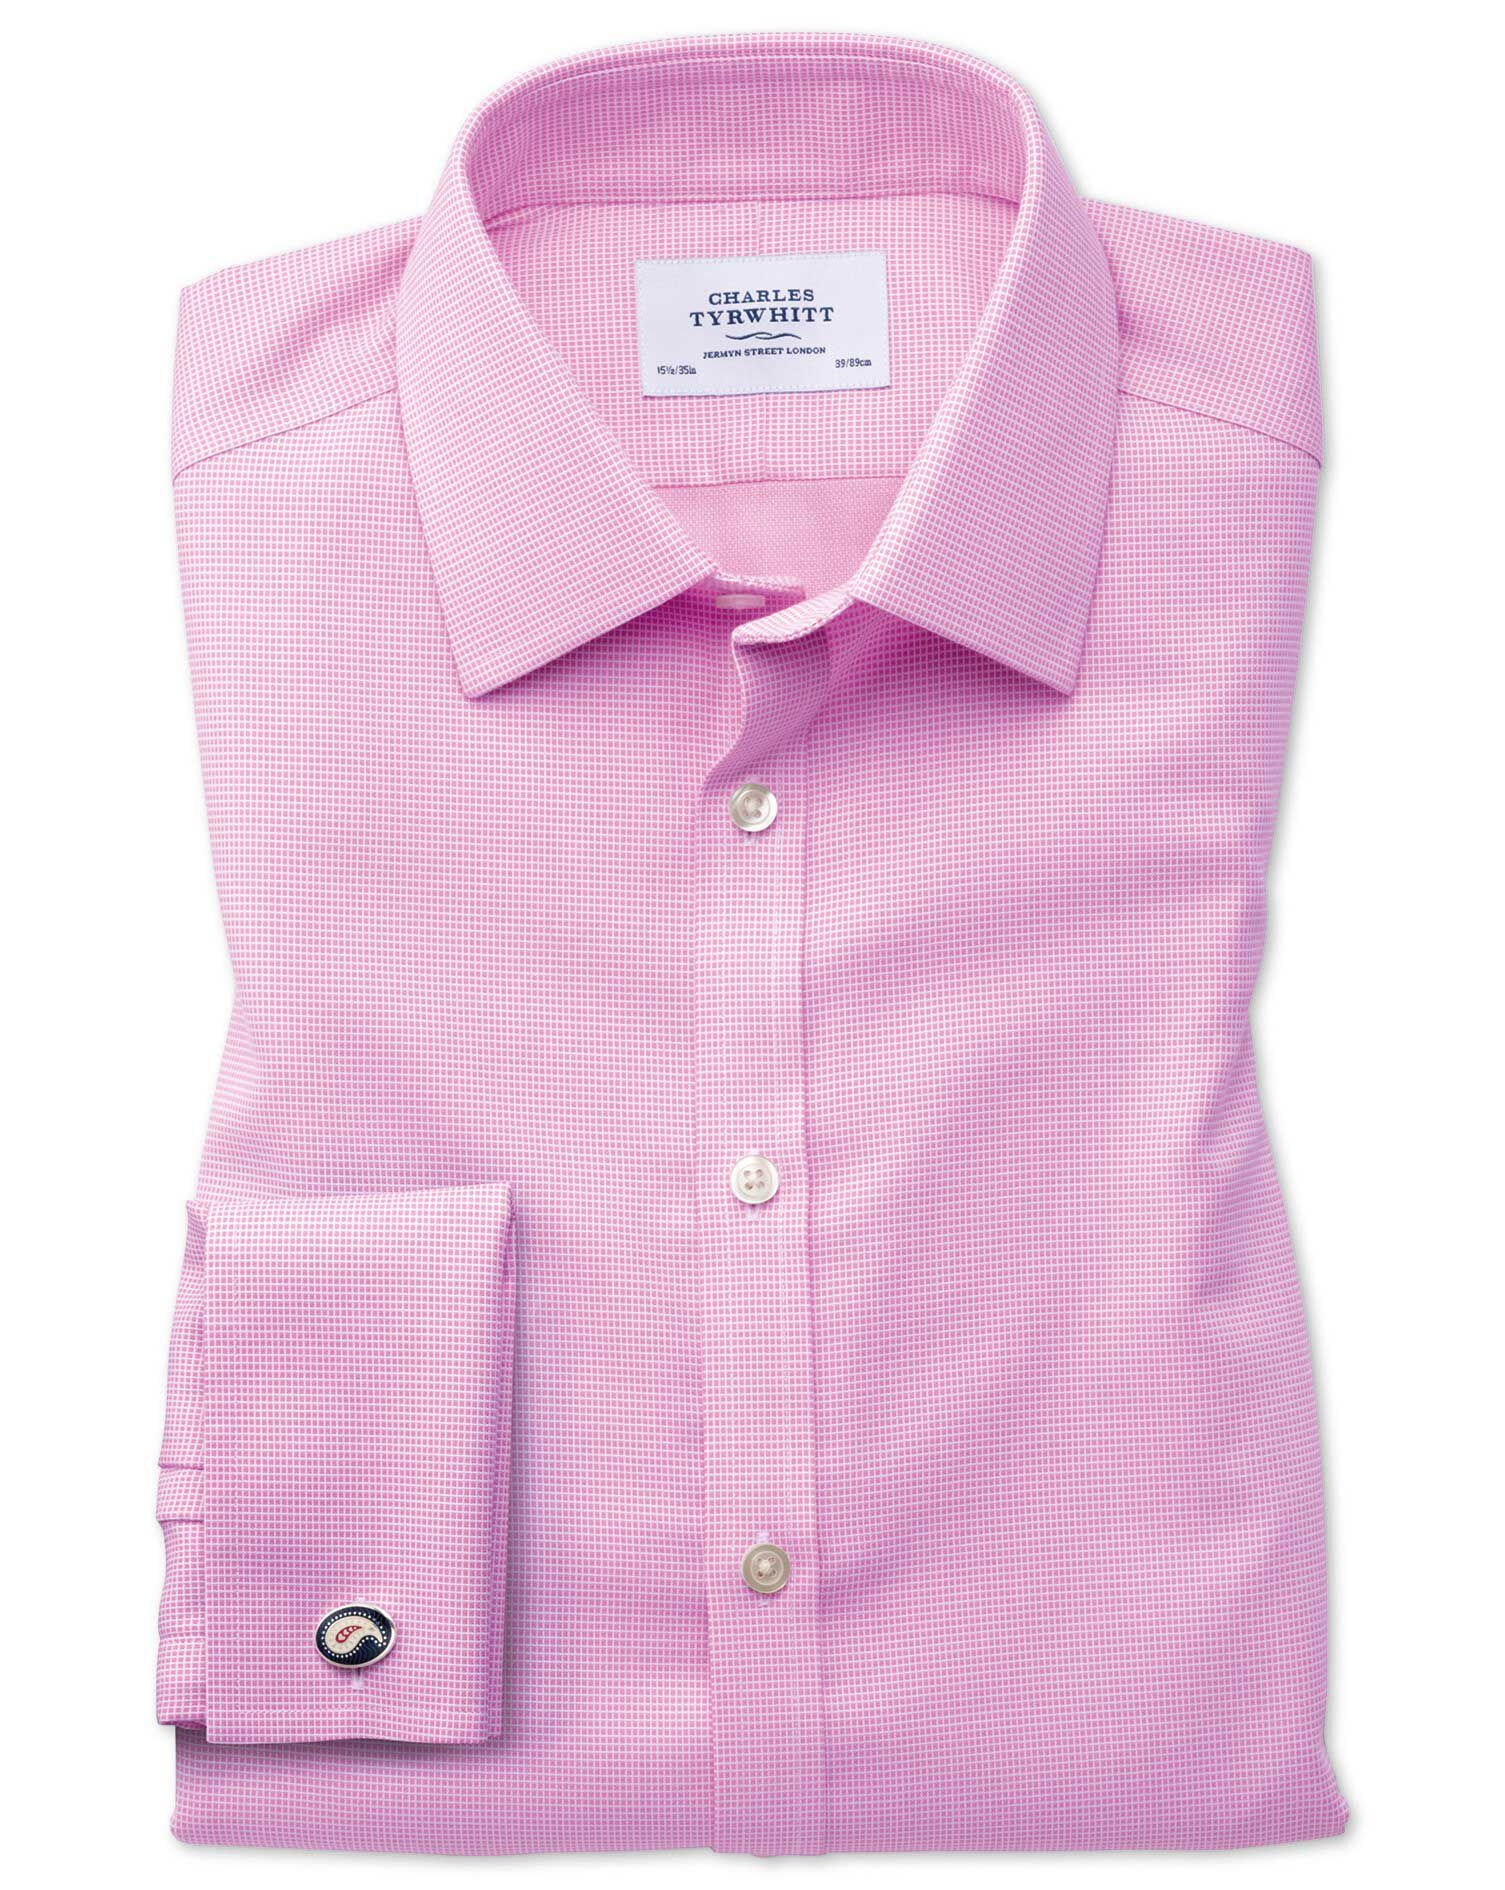 Slim Fit Non-Iron Square Weave Pink Cotton Formal Shirt Single Cuff Size 17/37 by Charles Tyrwhitt